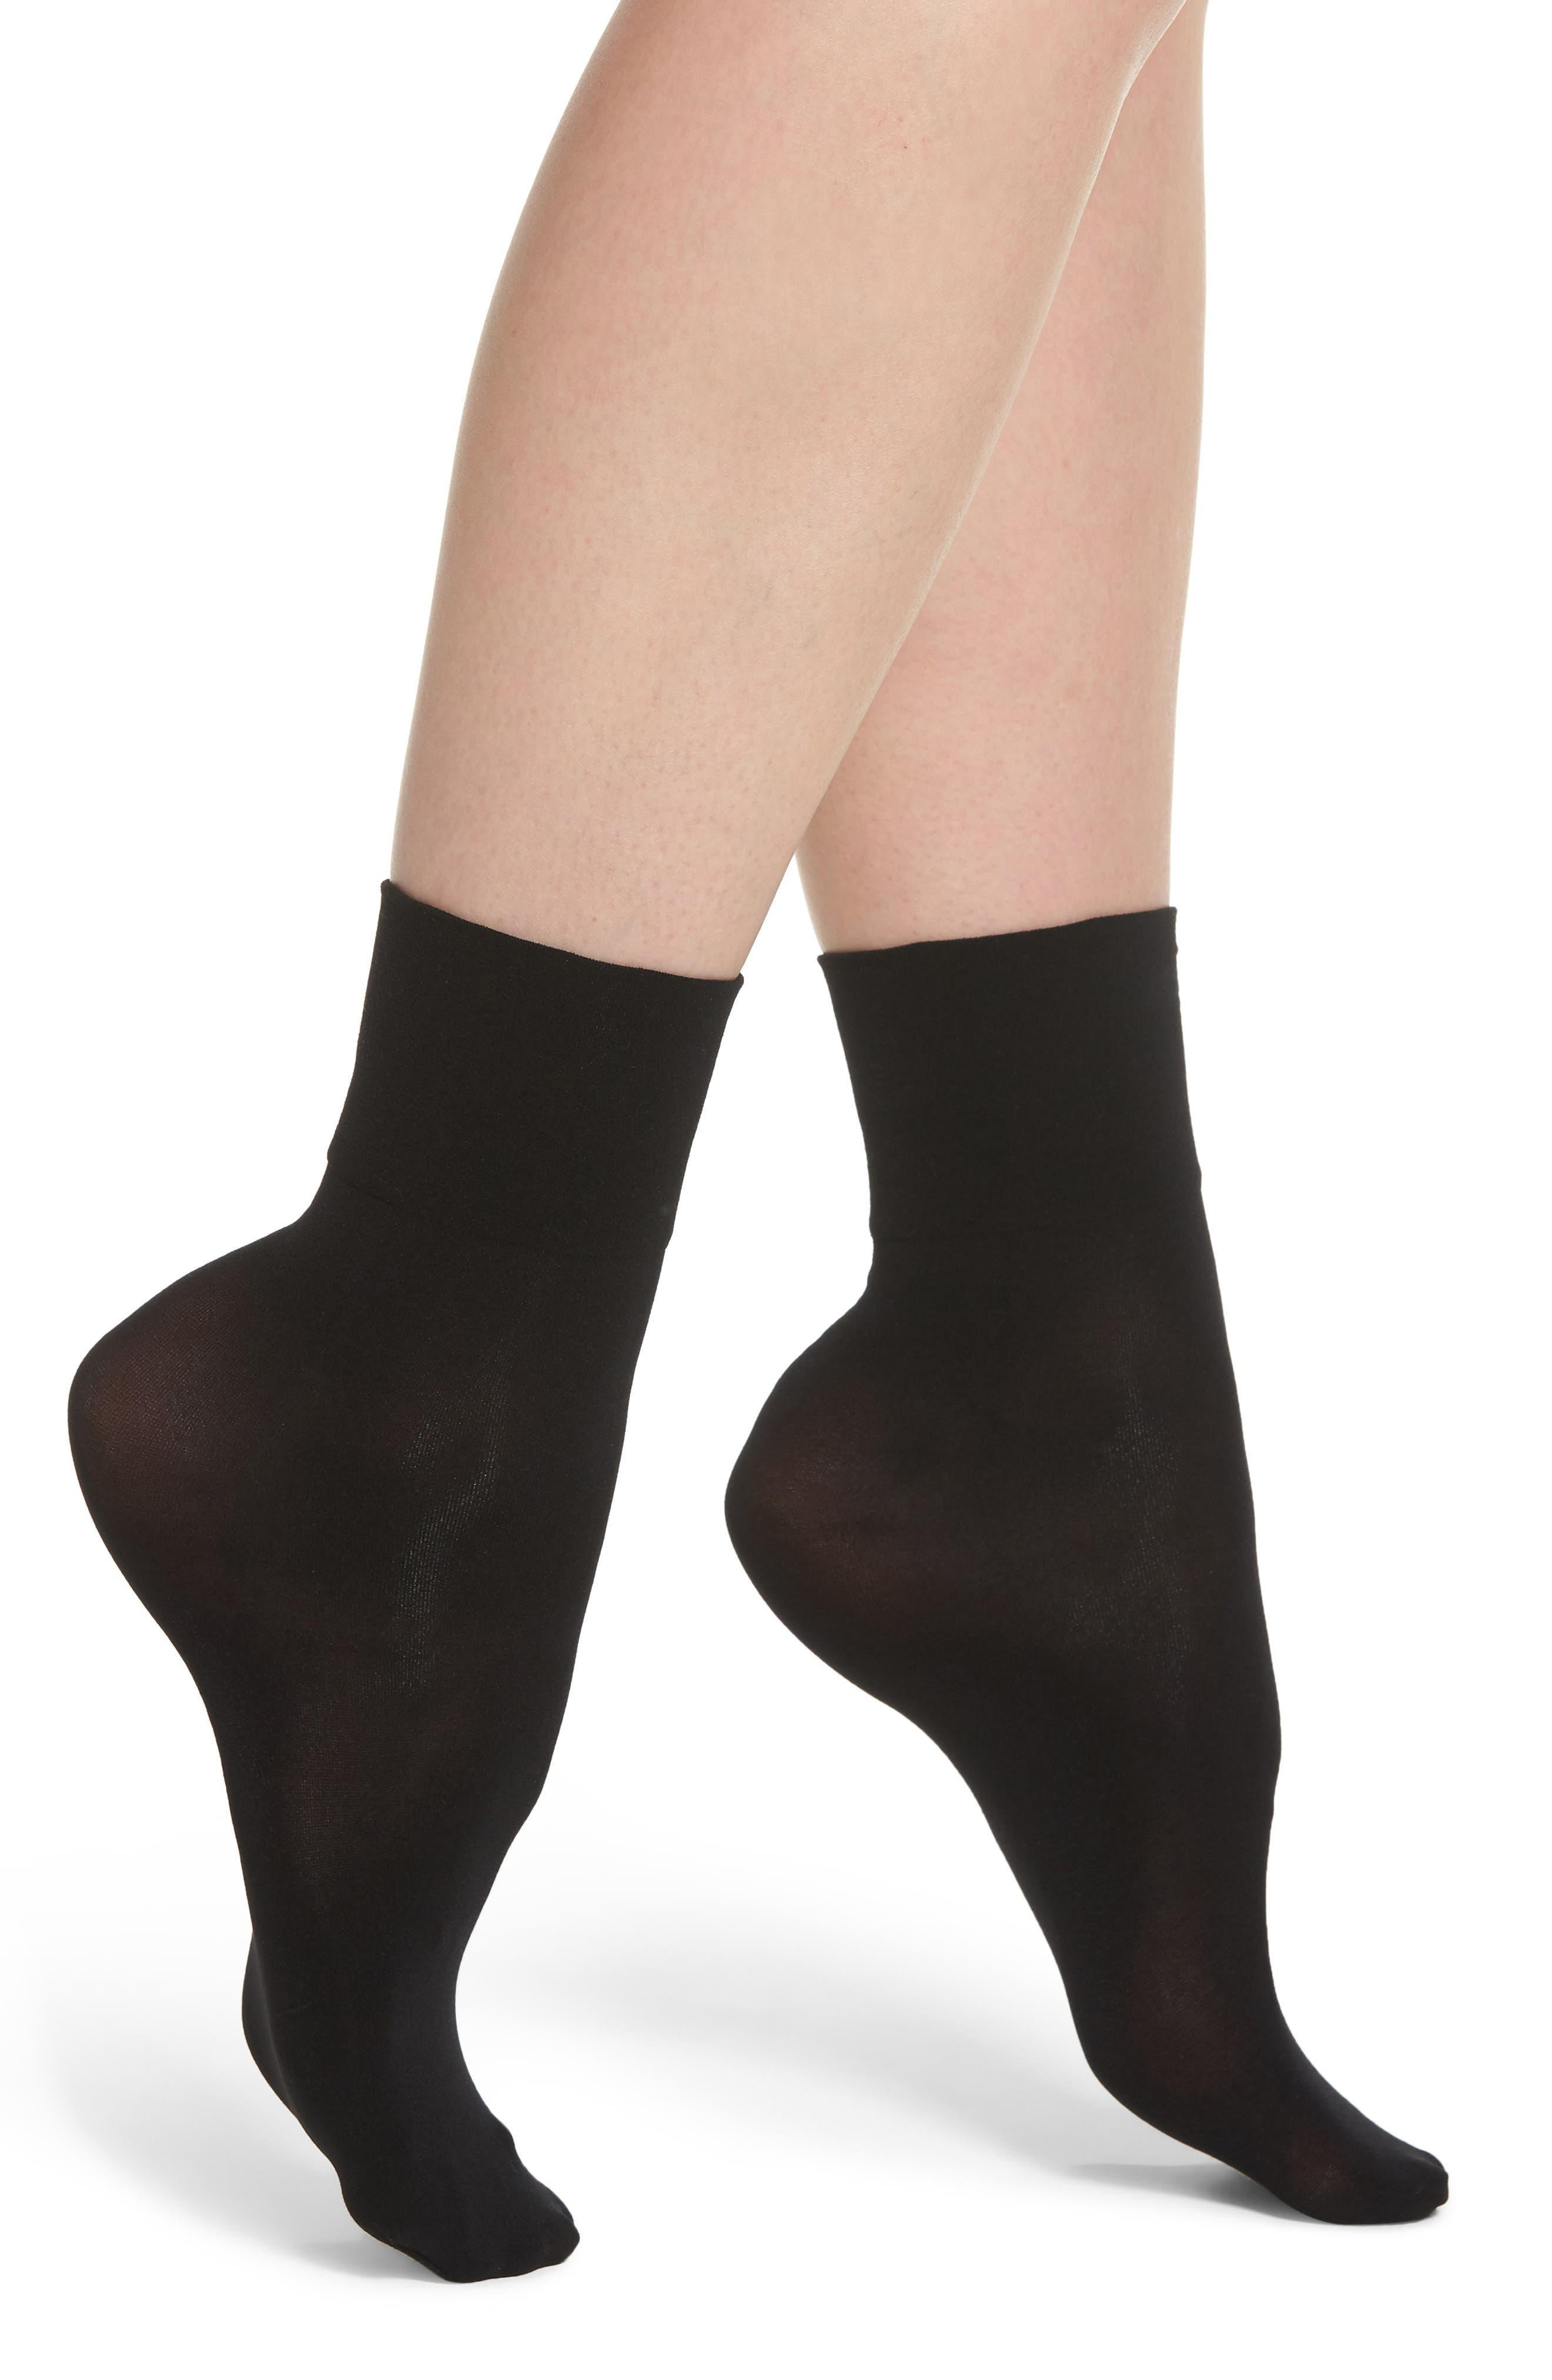 Opaque Anklet Socks,                             Main thumbnail 1, color,                             001